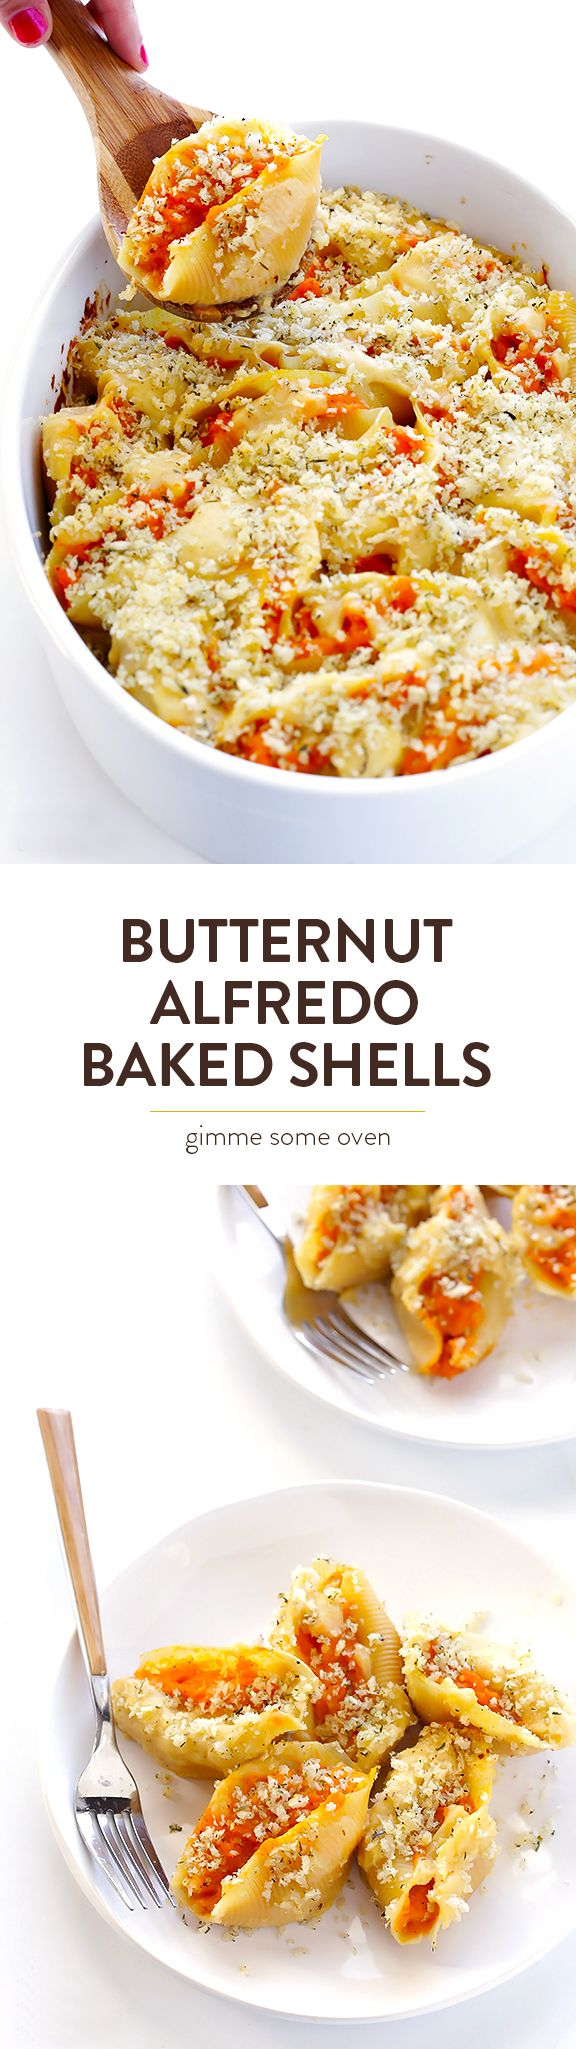 This recipe for Butternut Squash Alfredo Baked Shells is the perfect comfort food for fall, and so delicious | gimmesomeoven.com